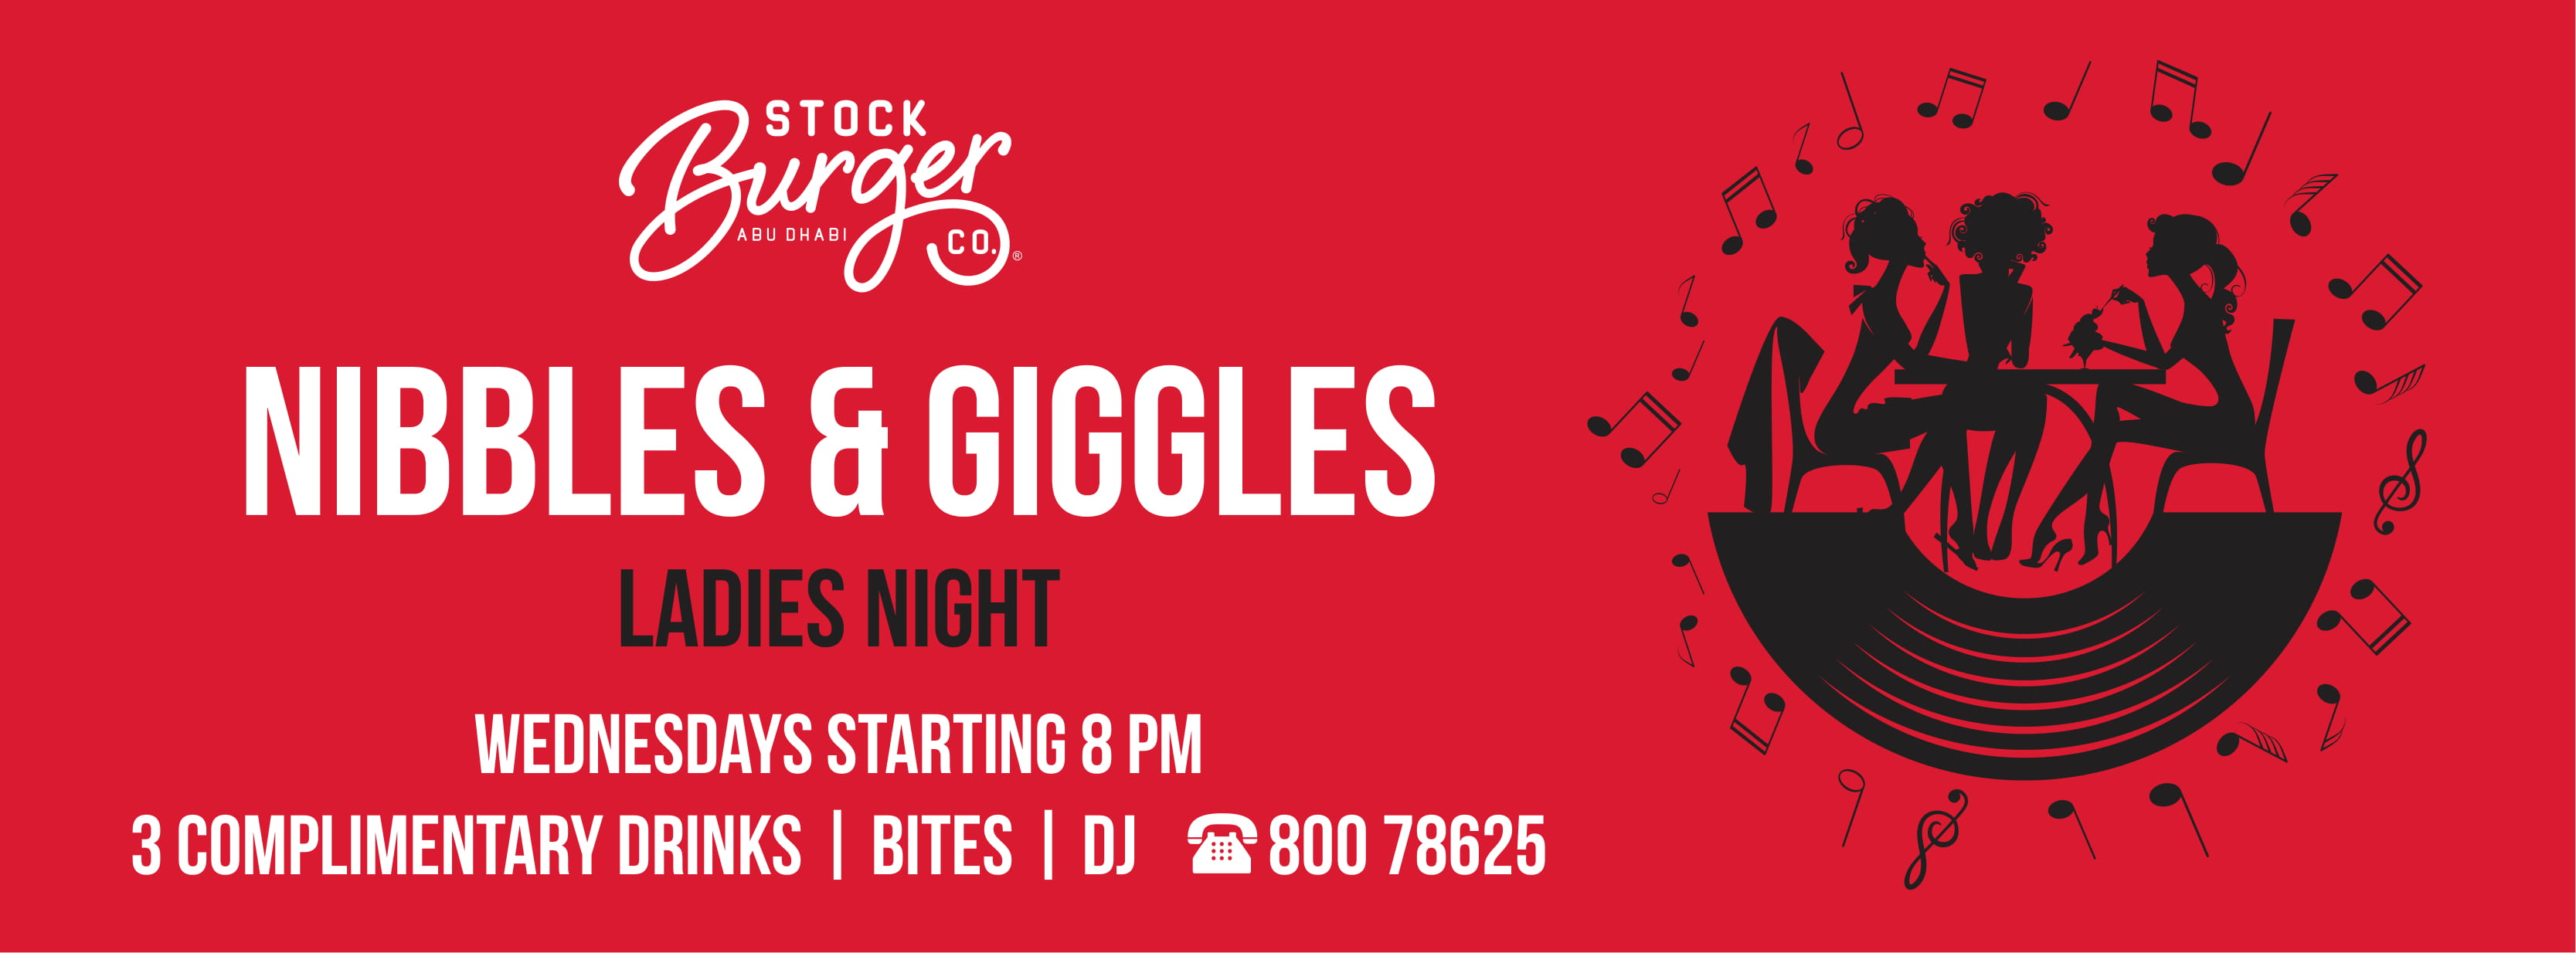 Nibbles & Giggles - Ladies Night @ Stock Burger Co.